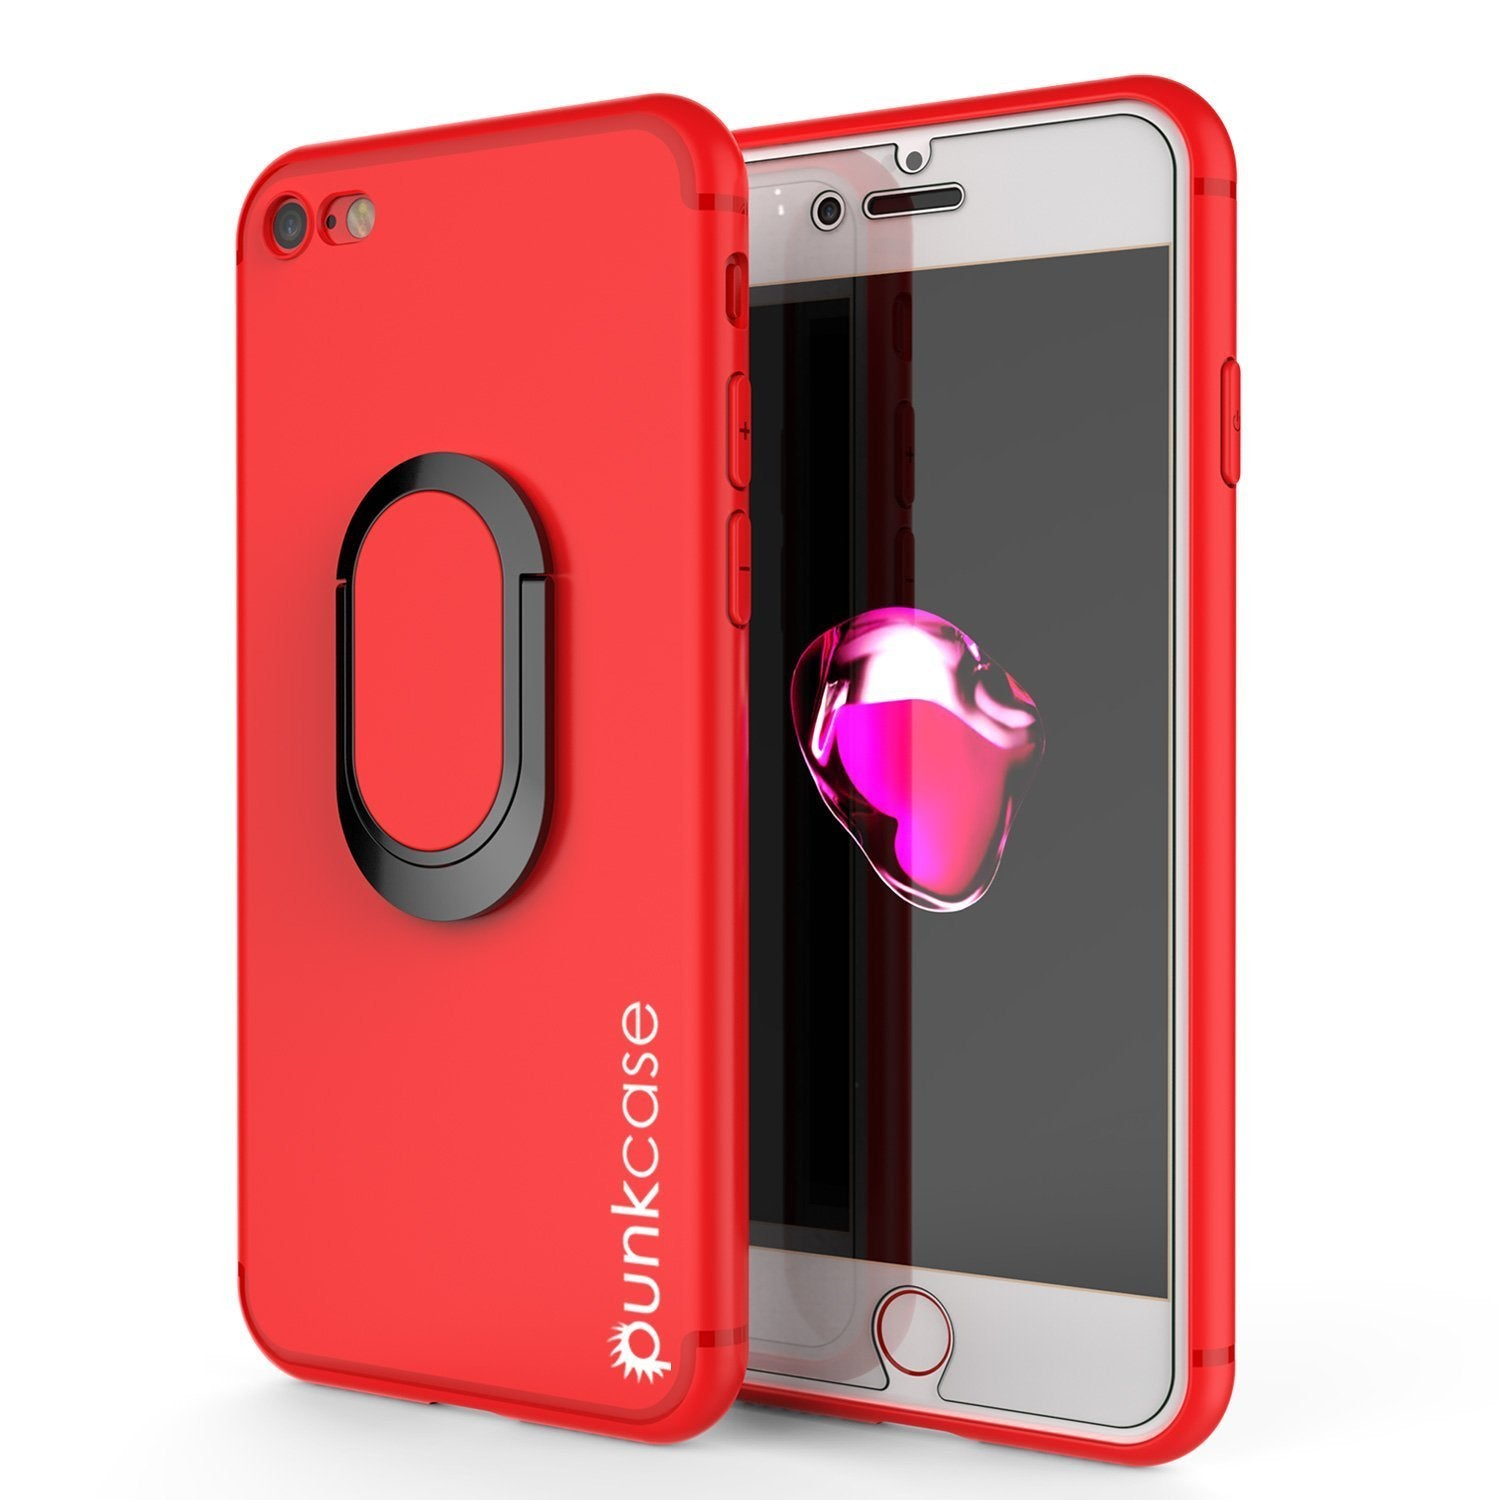 iPhone 8 Case, Punkcase Magnetix Protective TPU Cover W/ Kickstand, Ring Grip Holder & Metal Plate for Magnetic Car Phone Mount PLUS Tempered Glass Screen Protector for Apple iPhone 6 /7 & 8 [red]